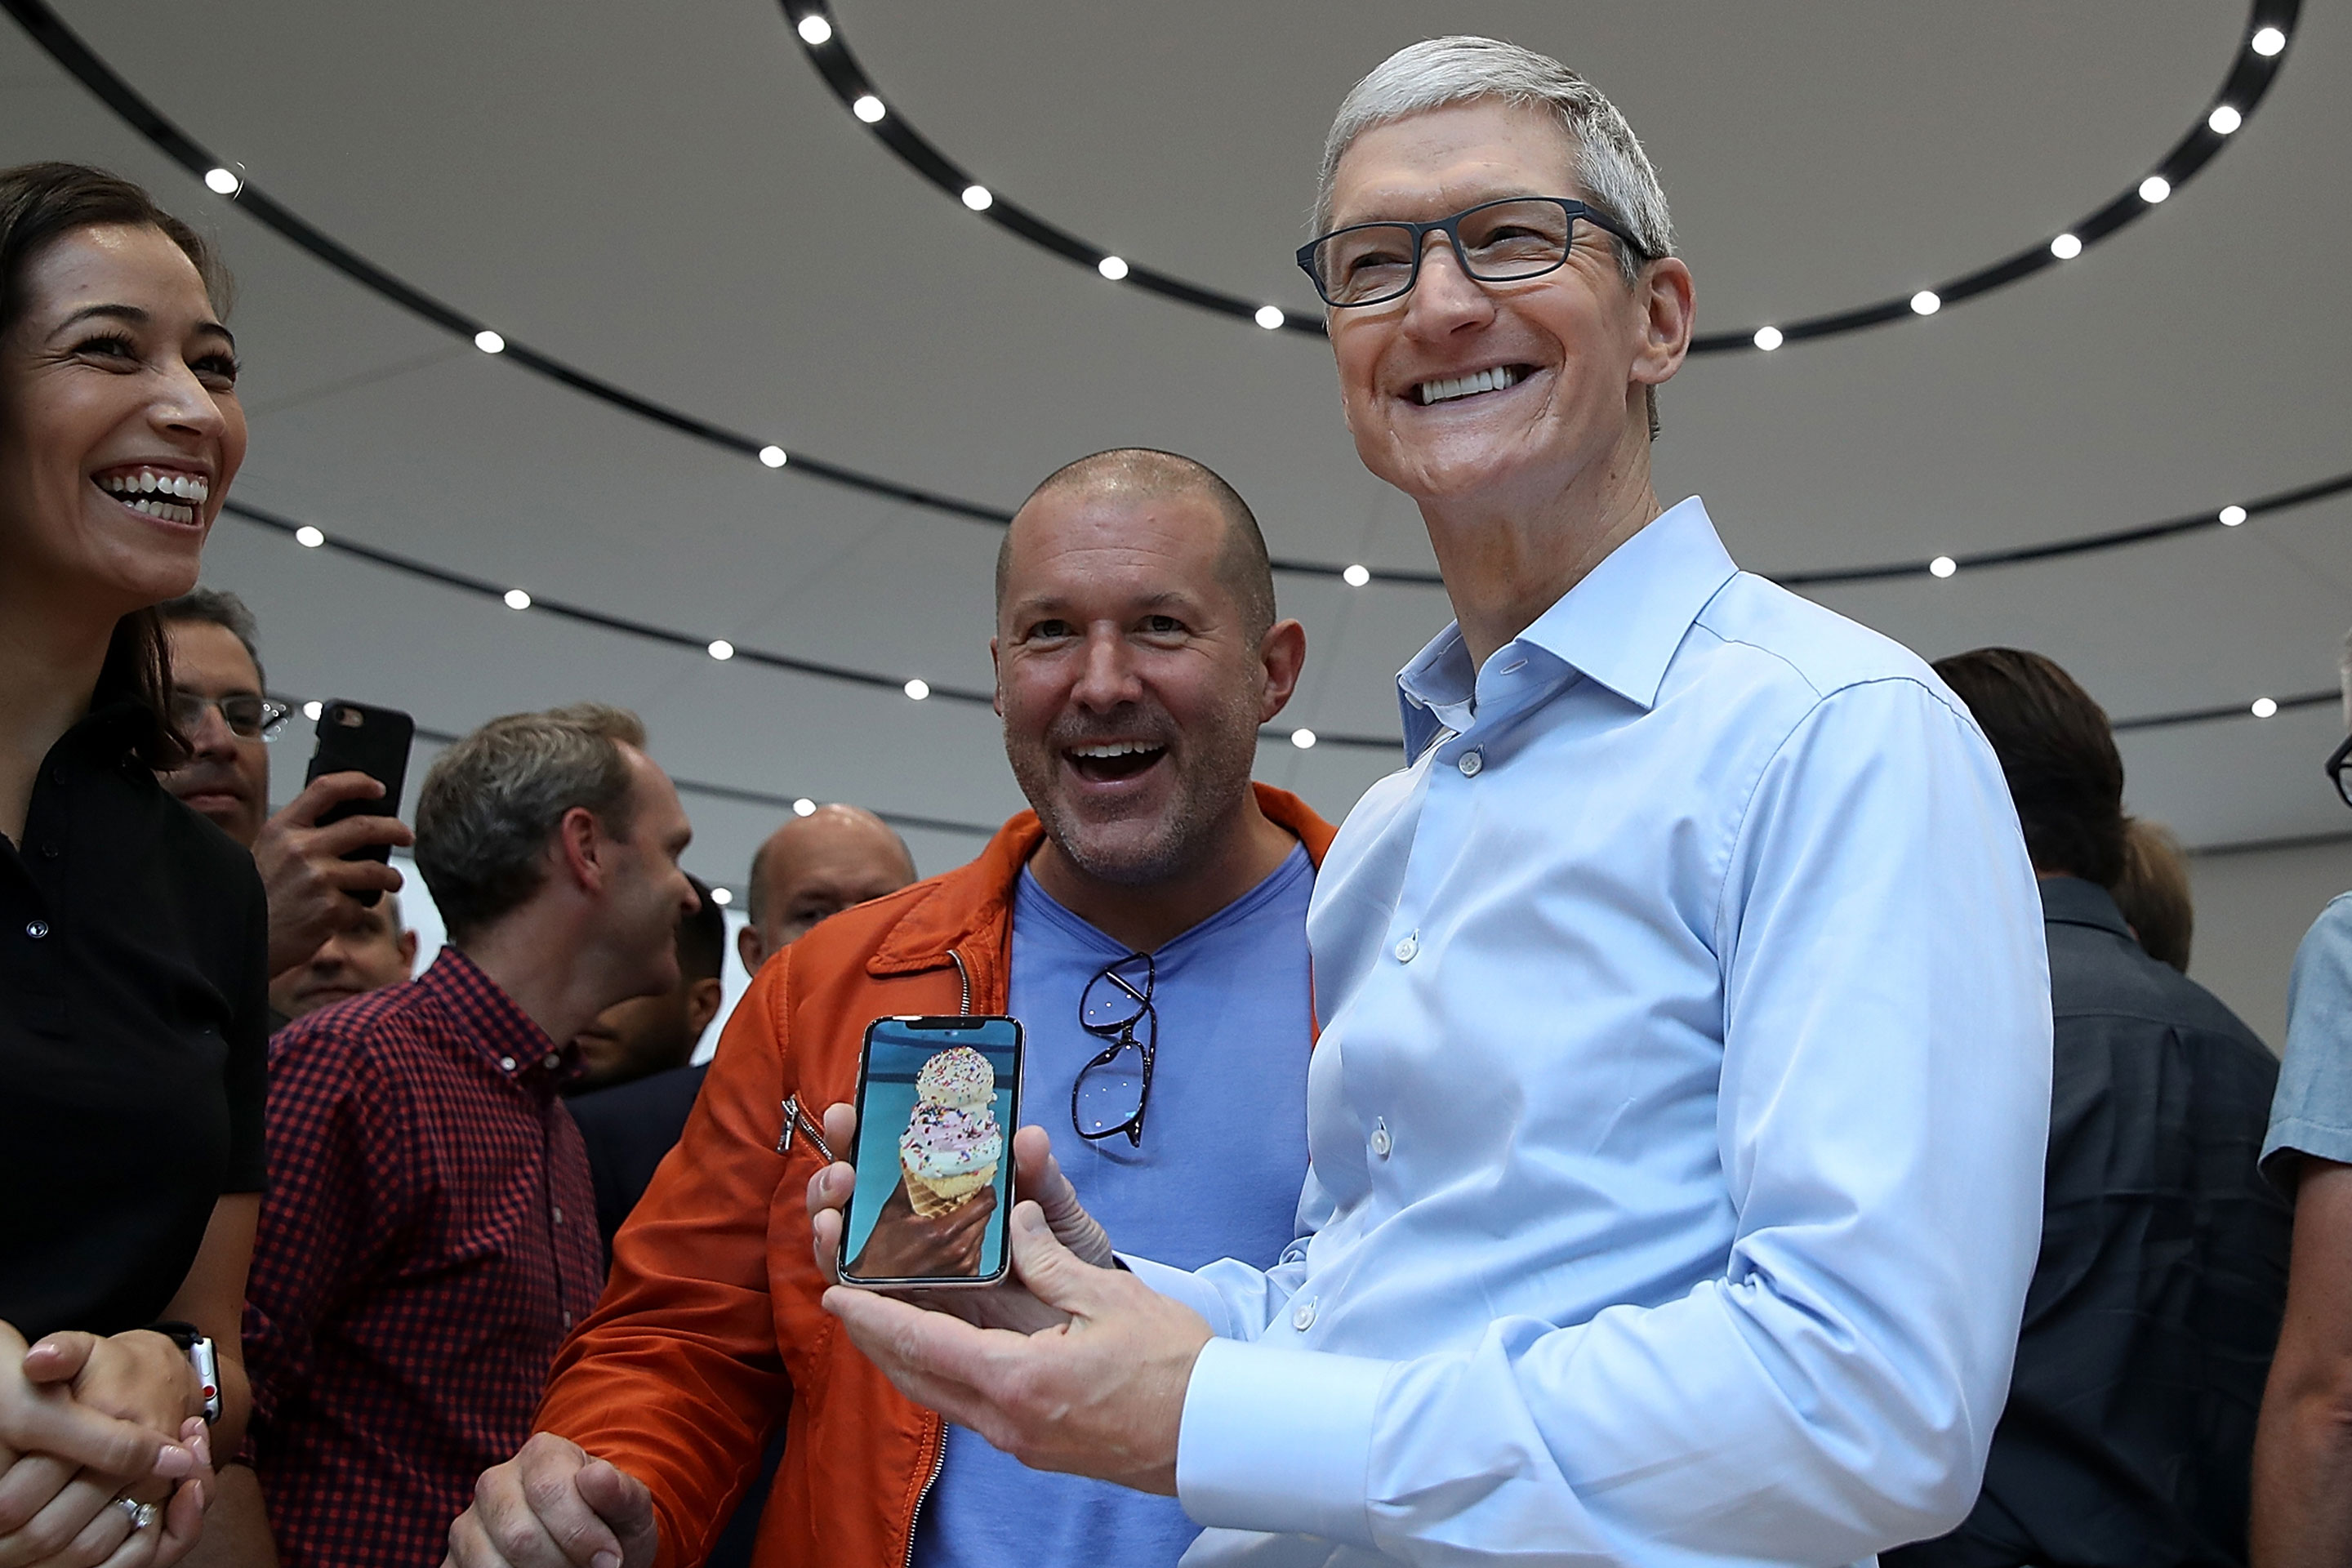 Apple CEO Tim Cook (R) and Apple chief design officer Jony Ive (L) look at the new Apple iPhone X during its debut at the Steve Jobs Theatre on the Apple Park campus on September 12, 2017 in Cupertino, California.